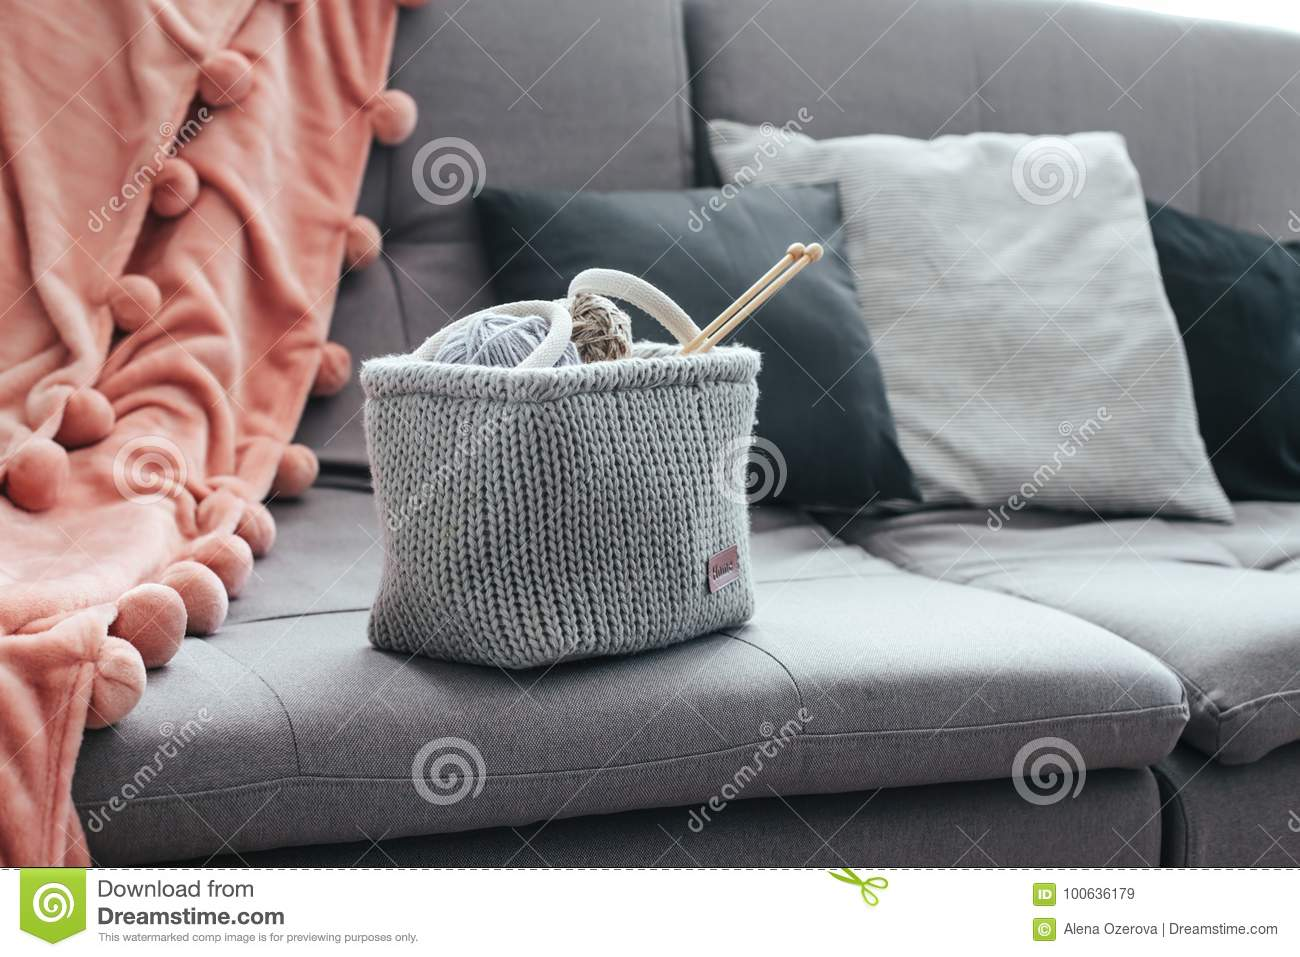 knitted basket with yarn and needles on grey sofa by the warm pompon blanket and cushions still life photo of nordic interior details cosy place in winter